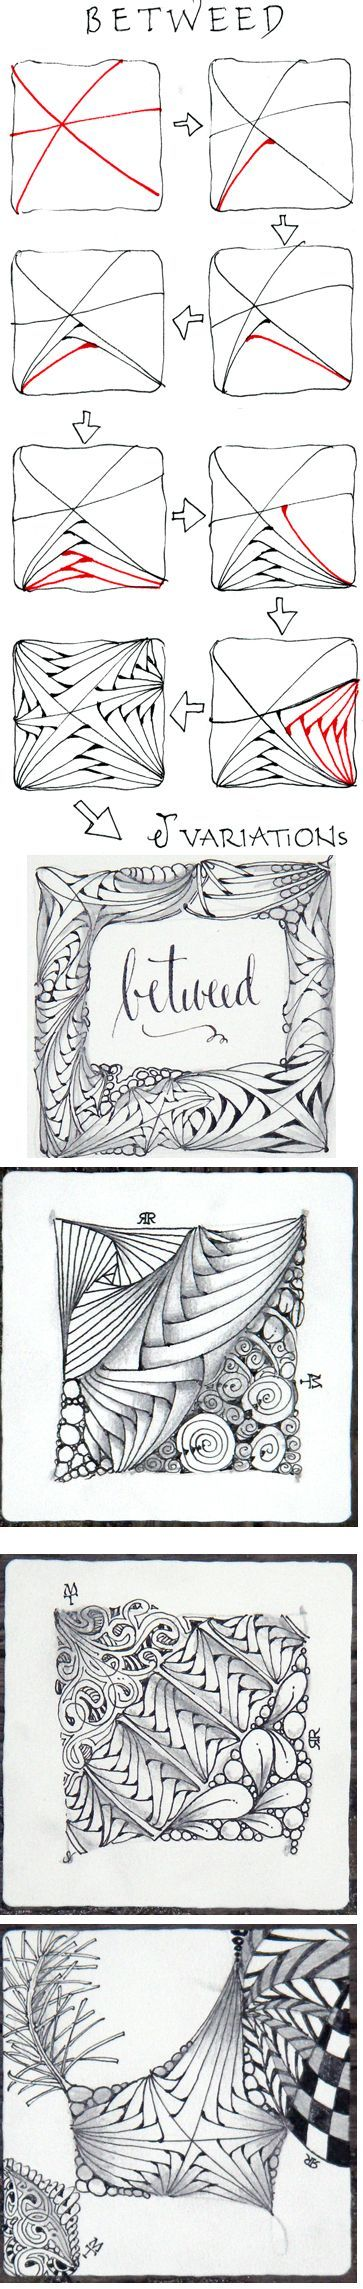 Betweed. Official Zentangle with variations.